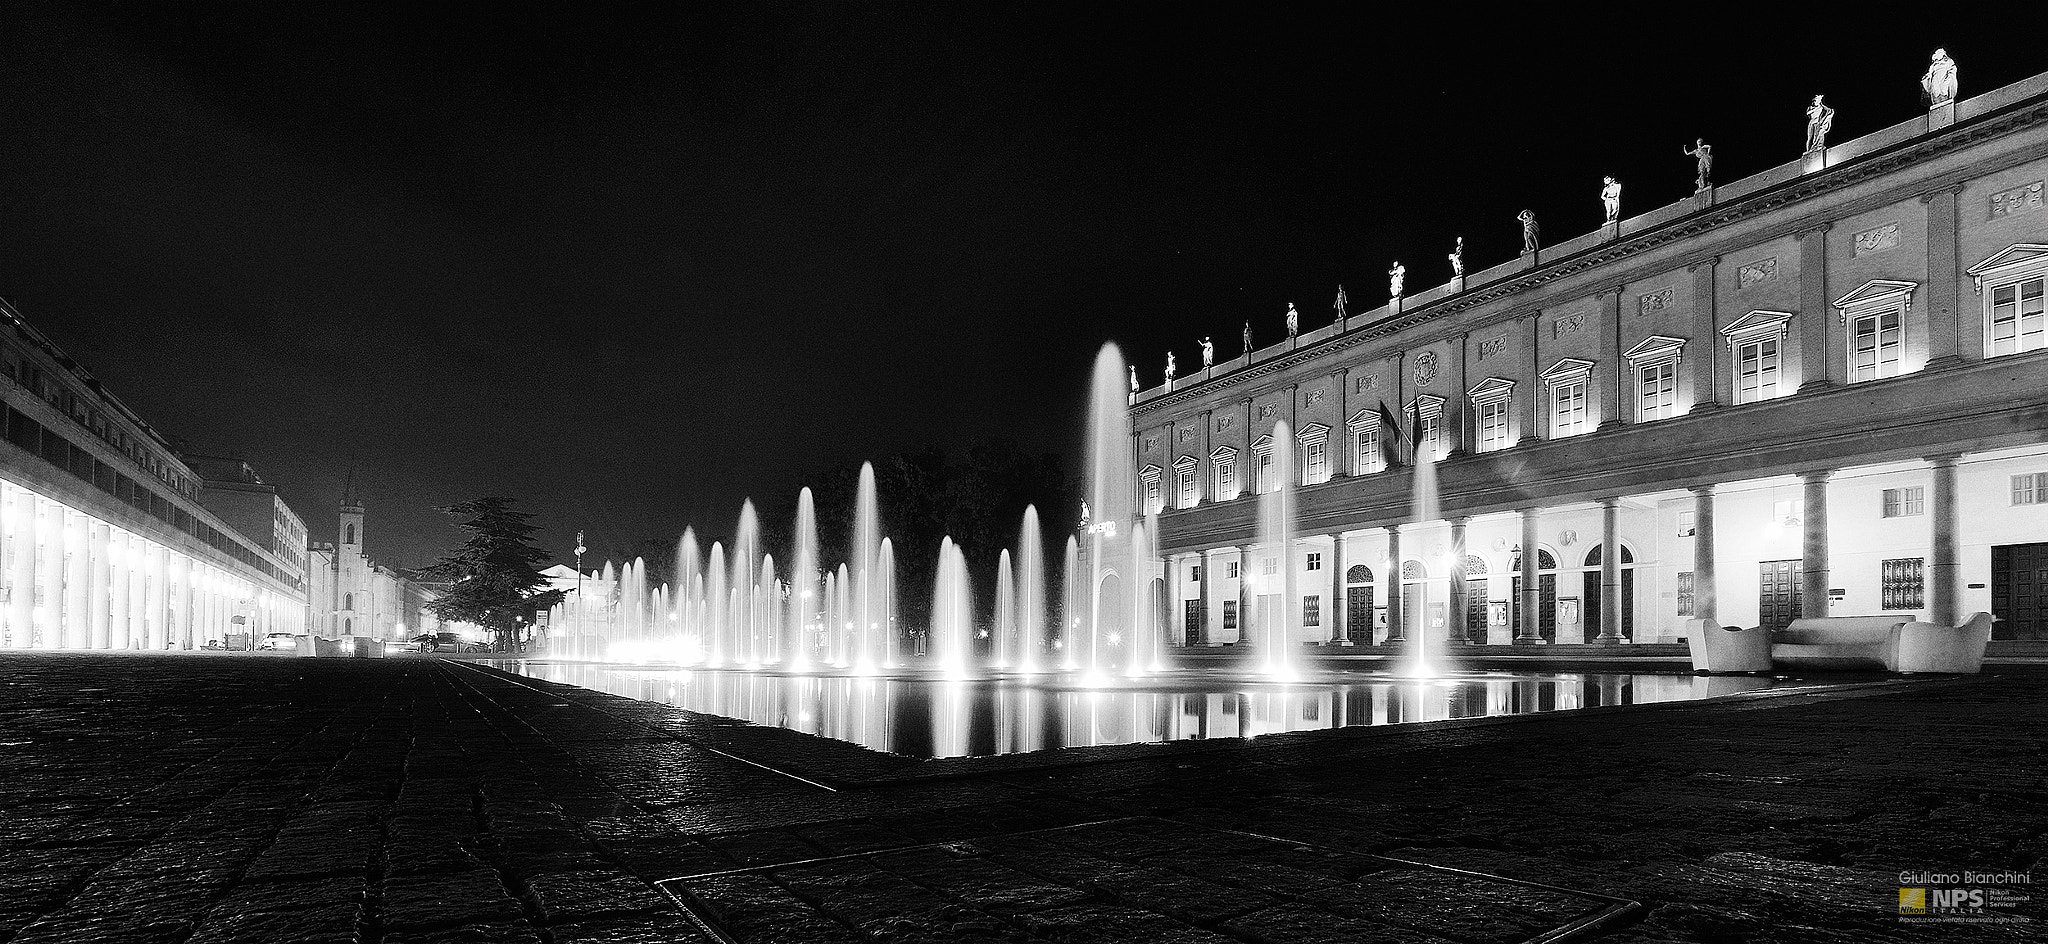 Photograph Teatro Valli - Reggio Emilia by Giuliano Bianchini on 500px